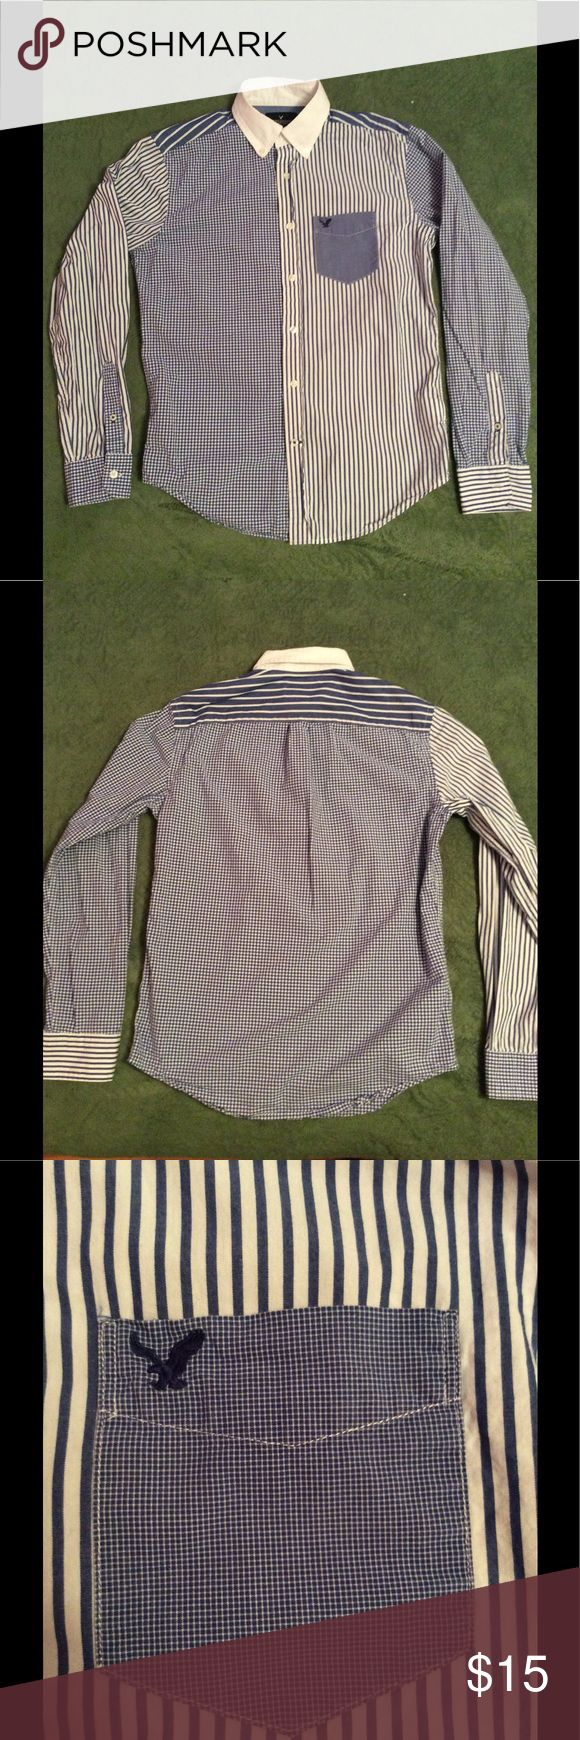 Host Pick  Men's color block American Eagle Shirt American Eagle multi-patterned color block shirt. Item is in wonderful condition. I just grew out of it American Eagle Outfitters Shirts Casual Button Down Shirts